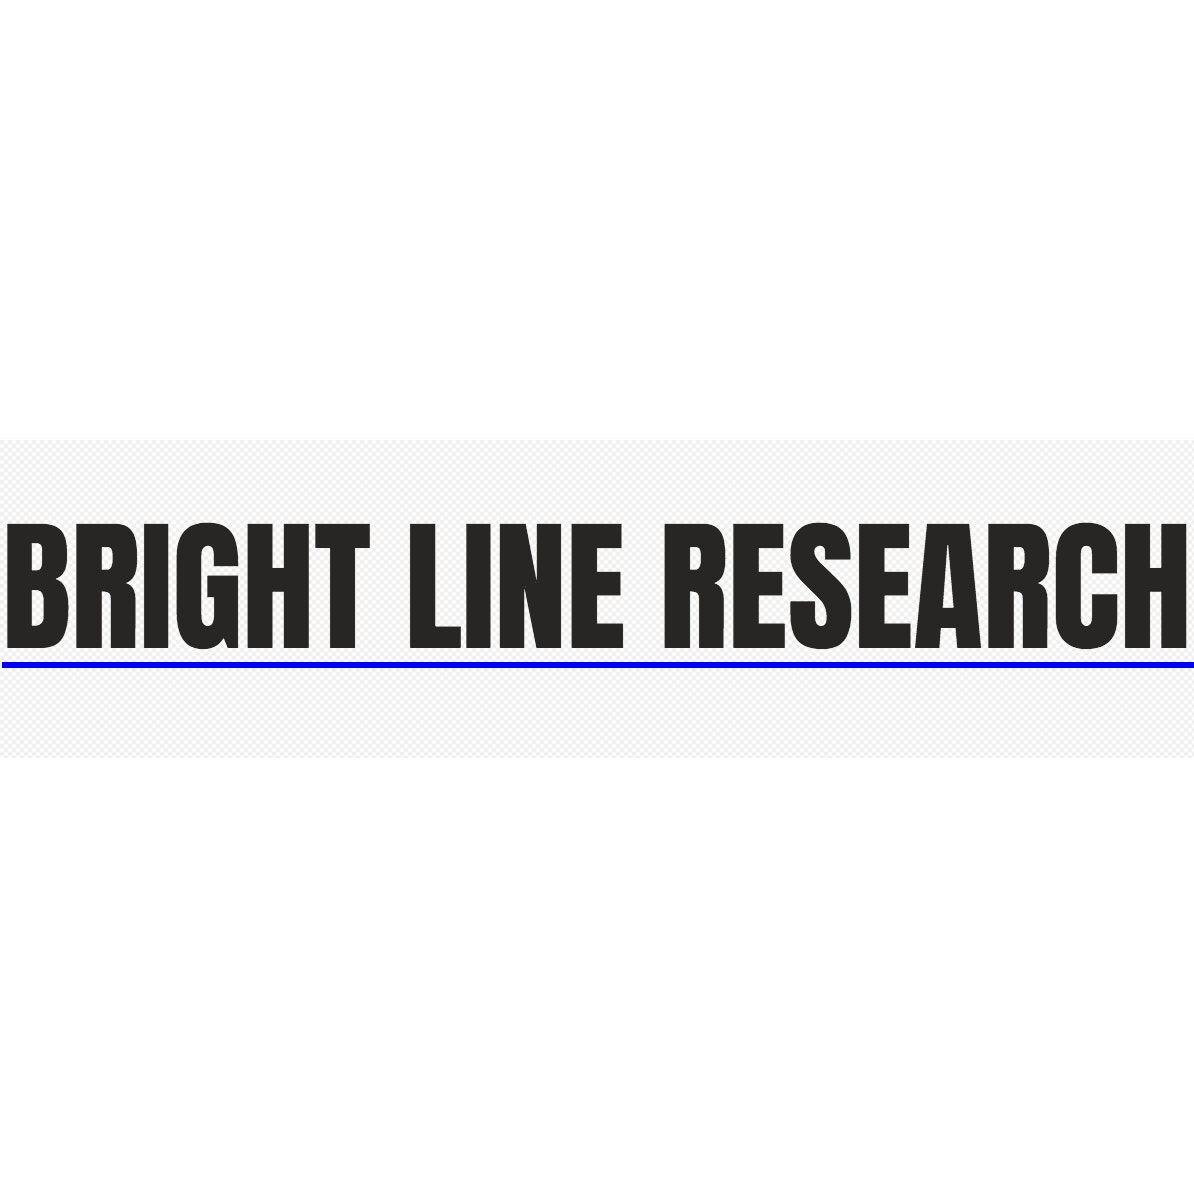 Bright Line Research Lab / Facility Logo